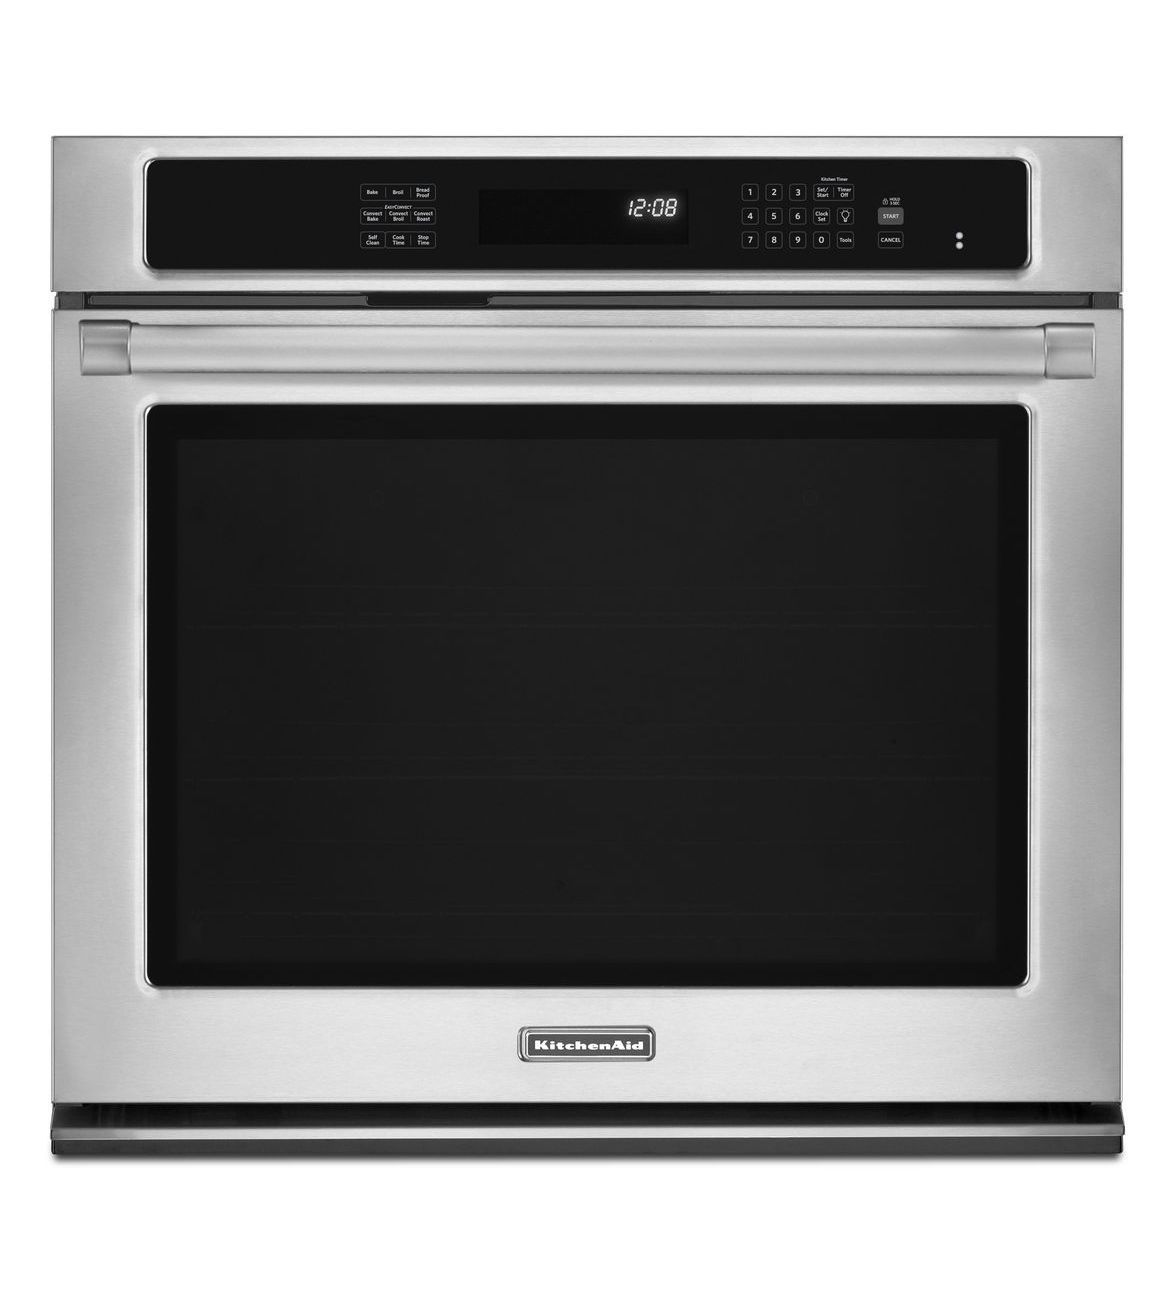 Kitchenaid 30 wall oven 2399 msrp wall oven